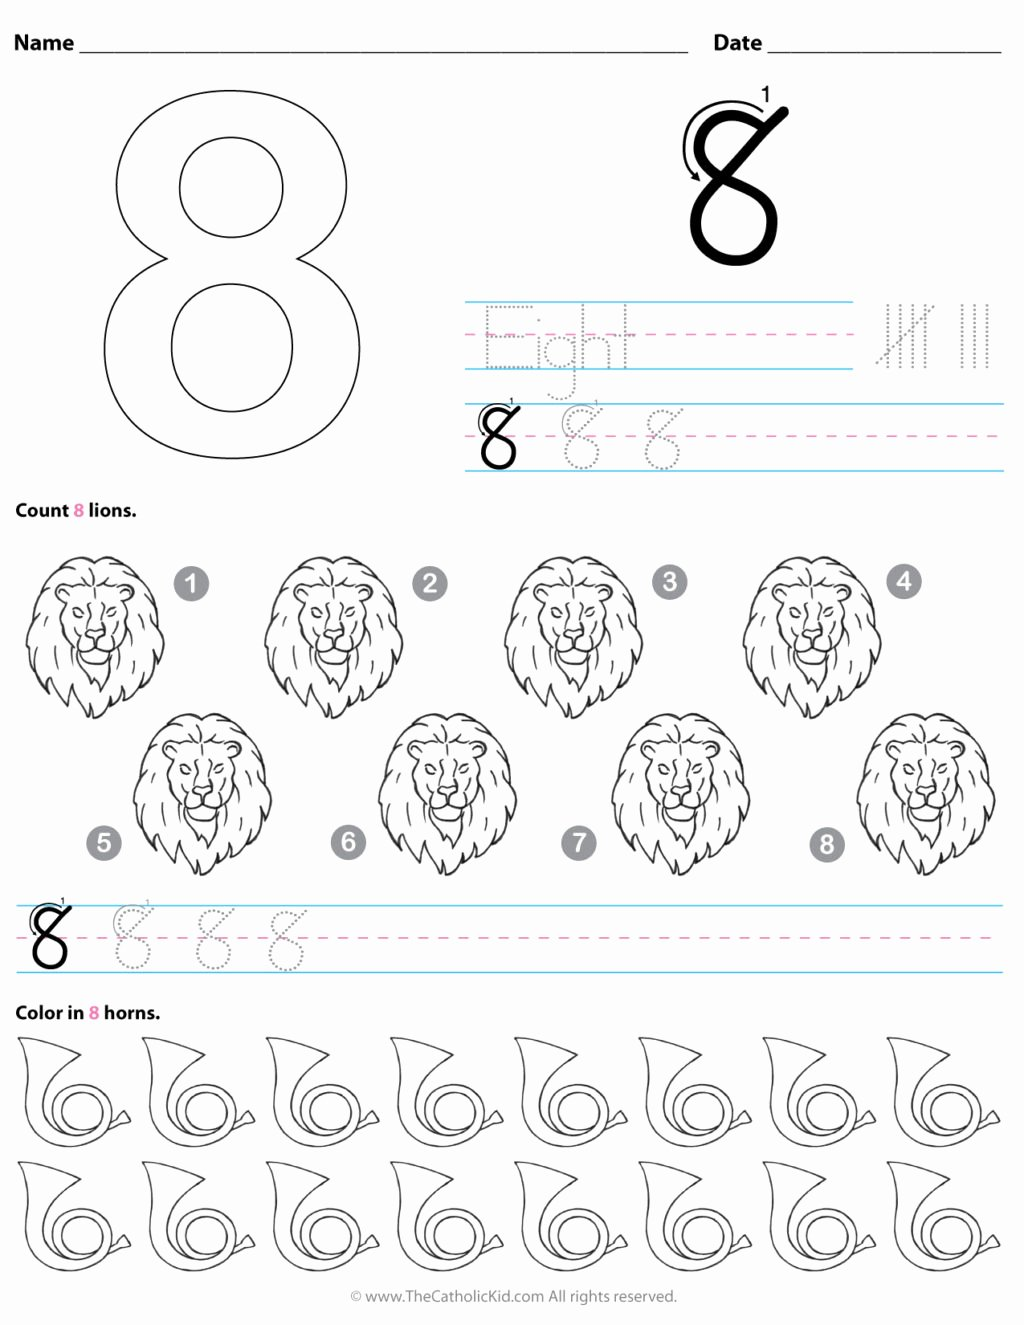 Colour Worksheets for Preschoolers top Worksheet Printable Pages for Kindergarten Worksheet